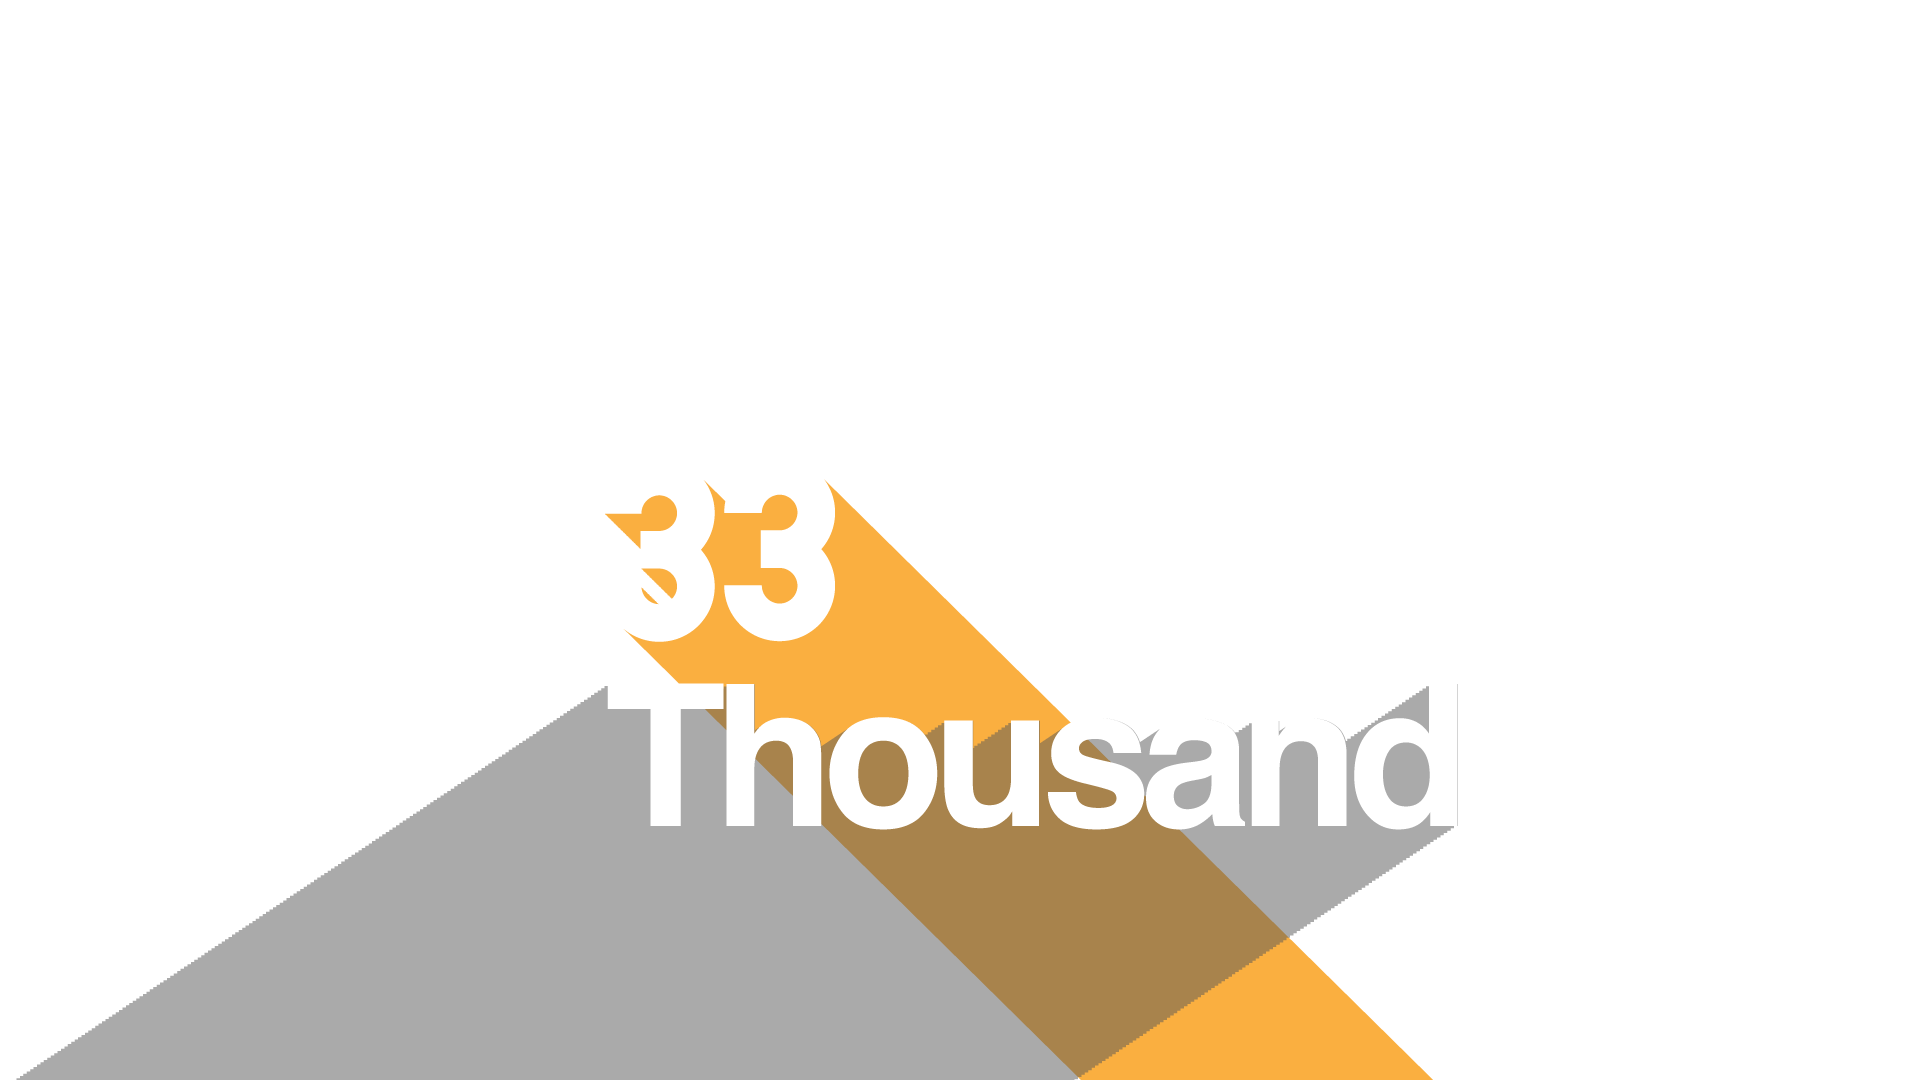 logo 33 Thousand